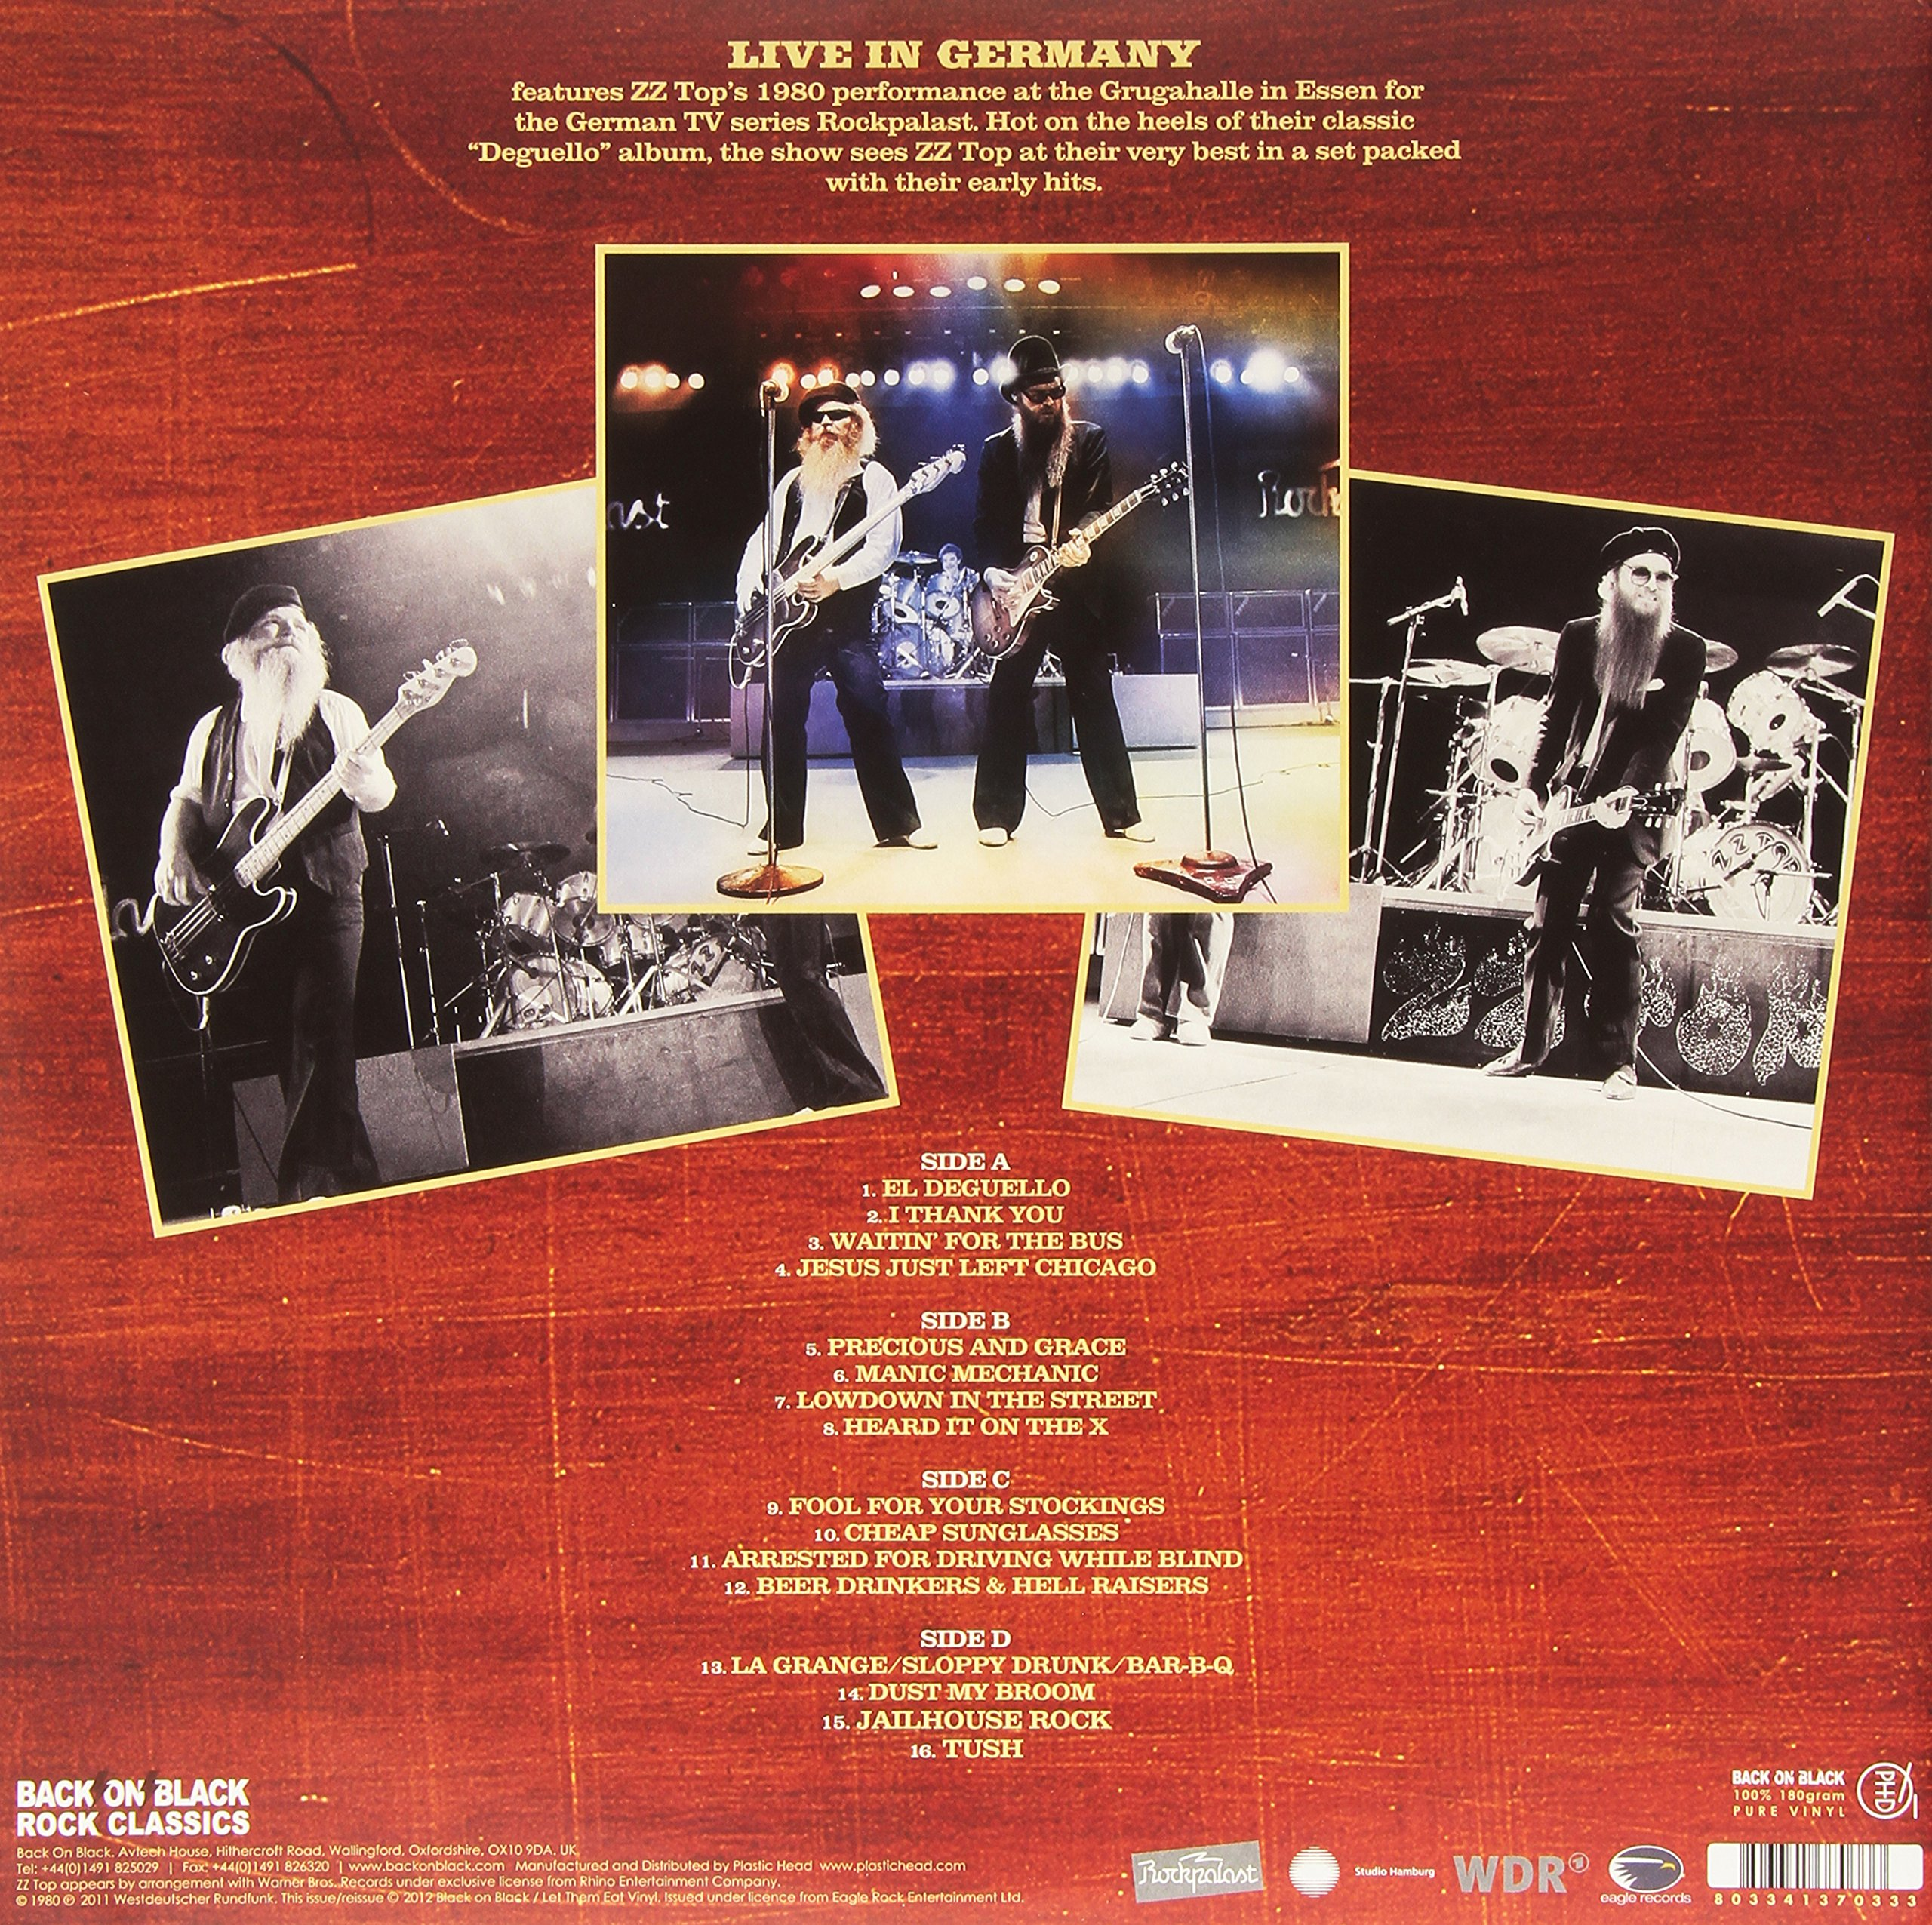 Live in Germany 1980 by Rock Classics